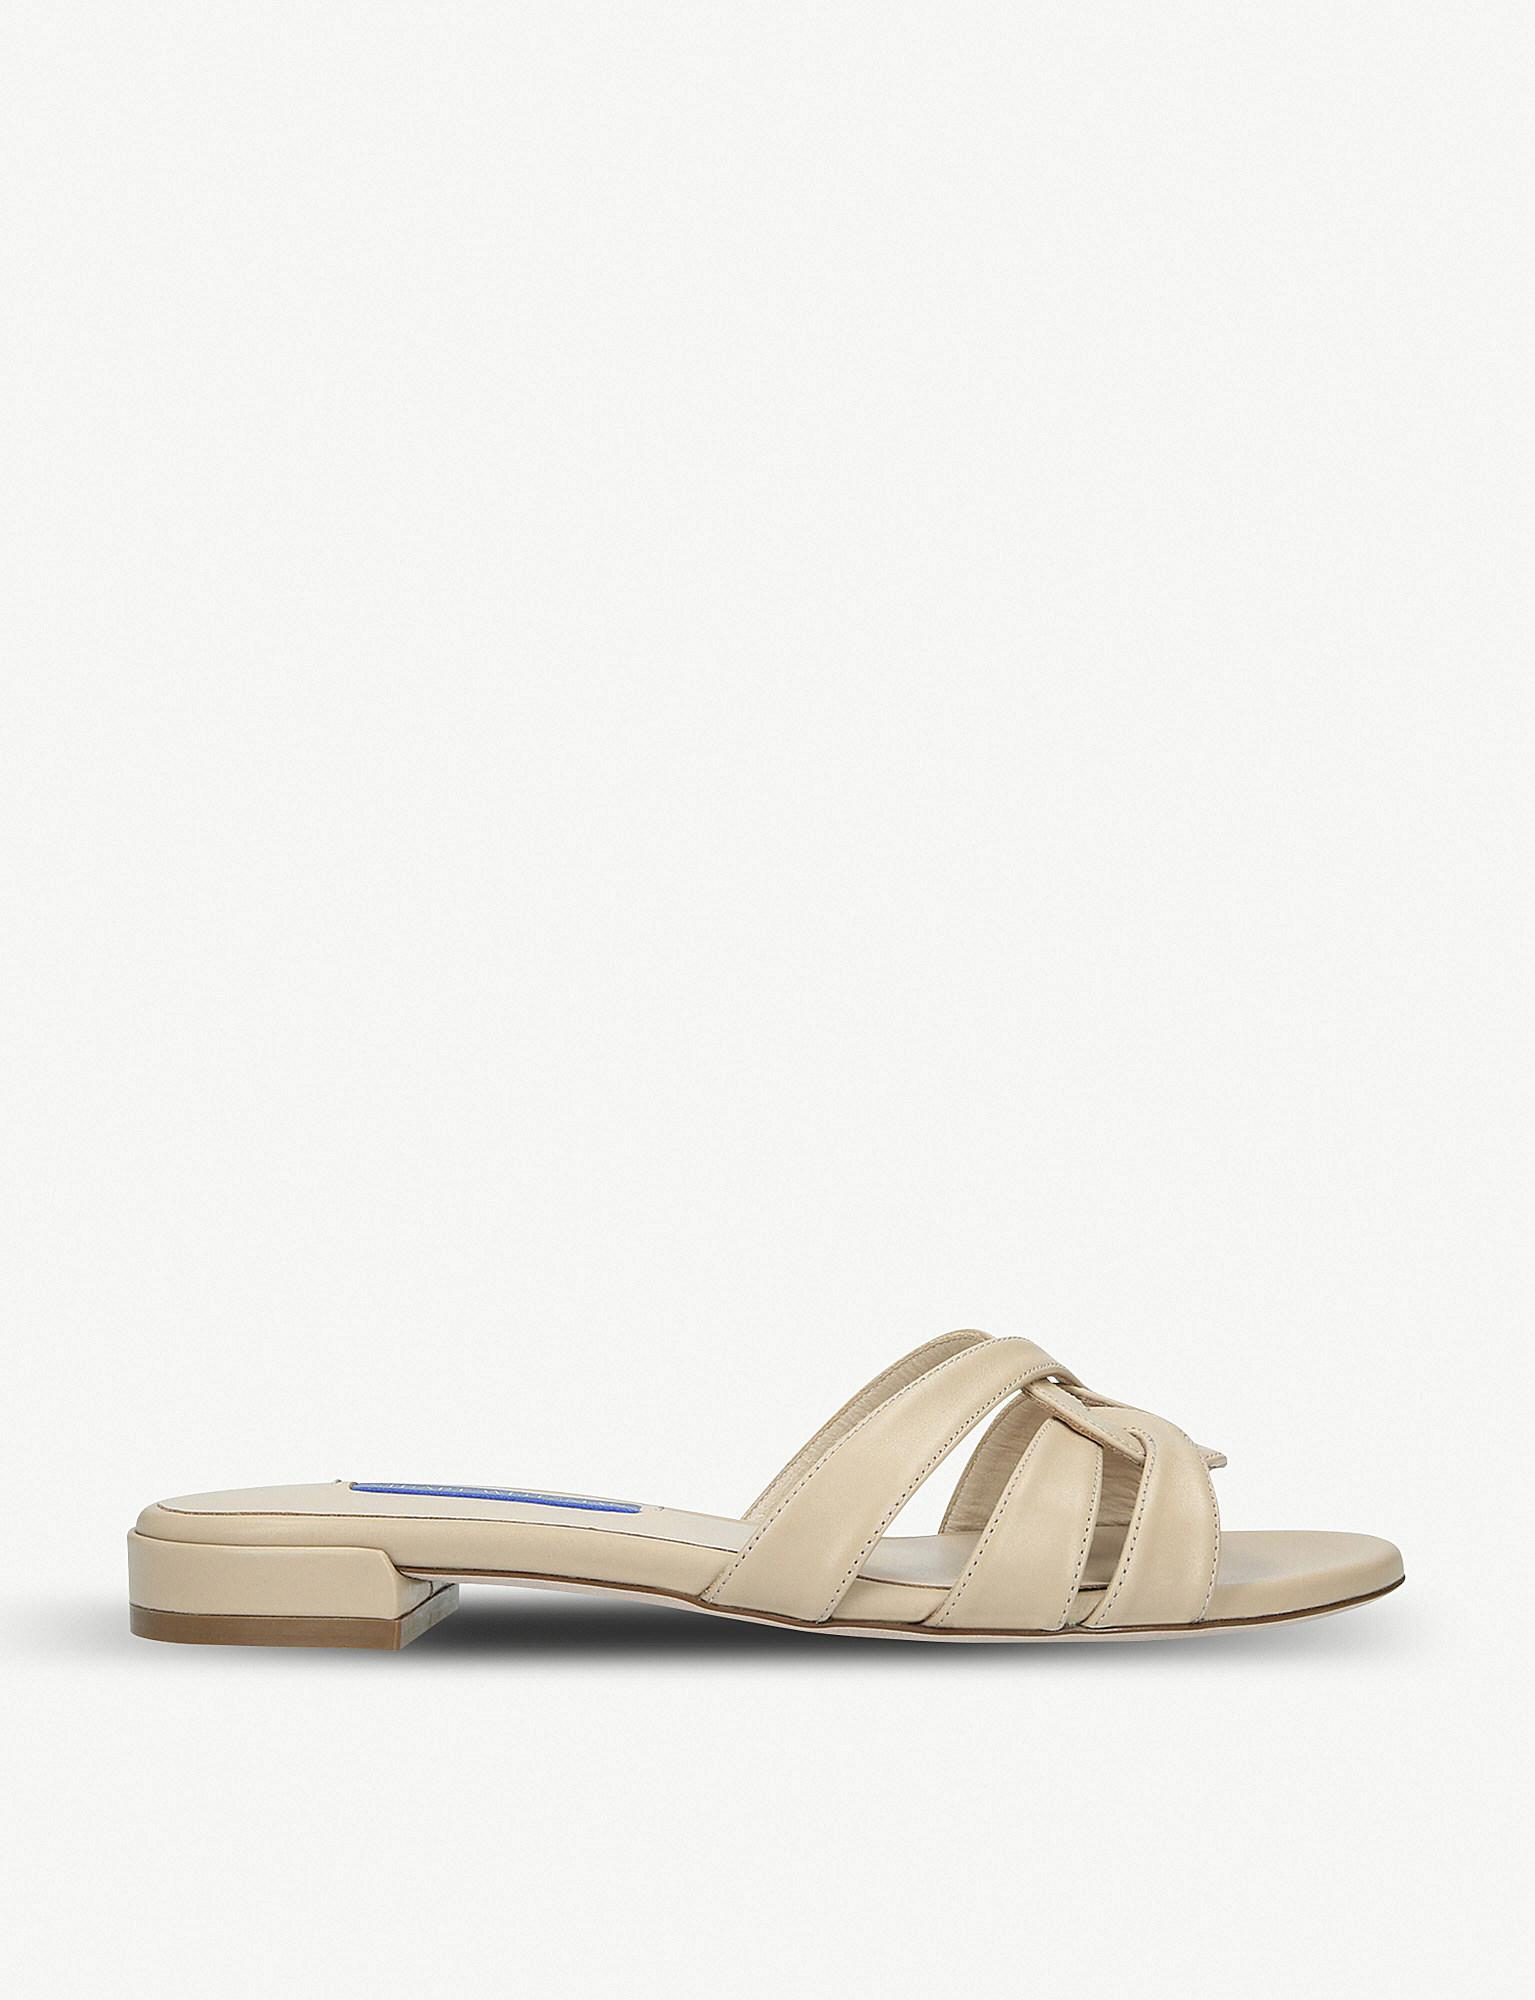 f71575ab4765 Stuart Weitzman Cami Leather Sandals in Natural - Lyst